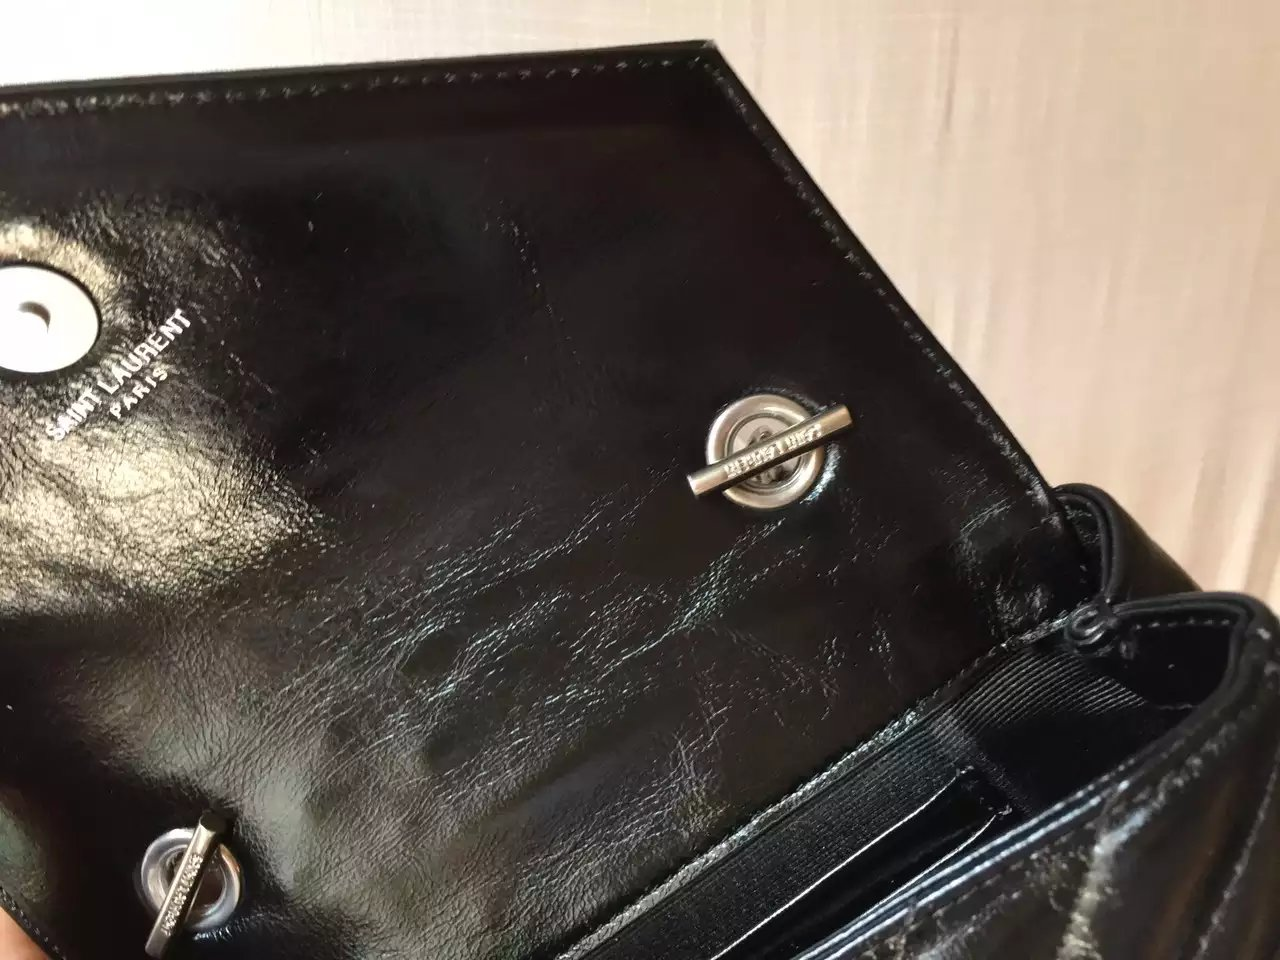 2016 Cheap YSL Out Sale with Free Shipping-Saint Laurent Classic Medium Baby Monogram Satchel in Black Matelasse Leather with Silver Studs